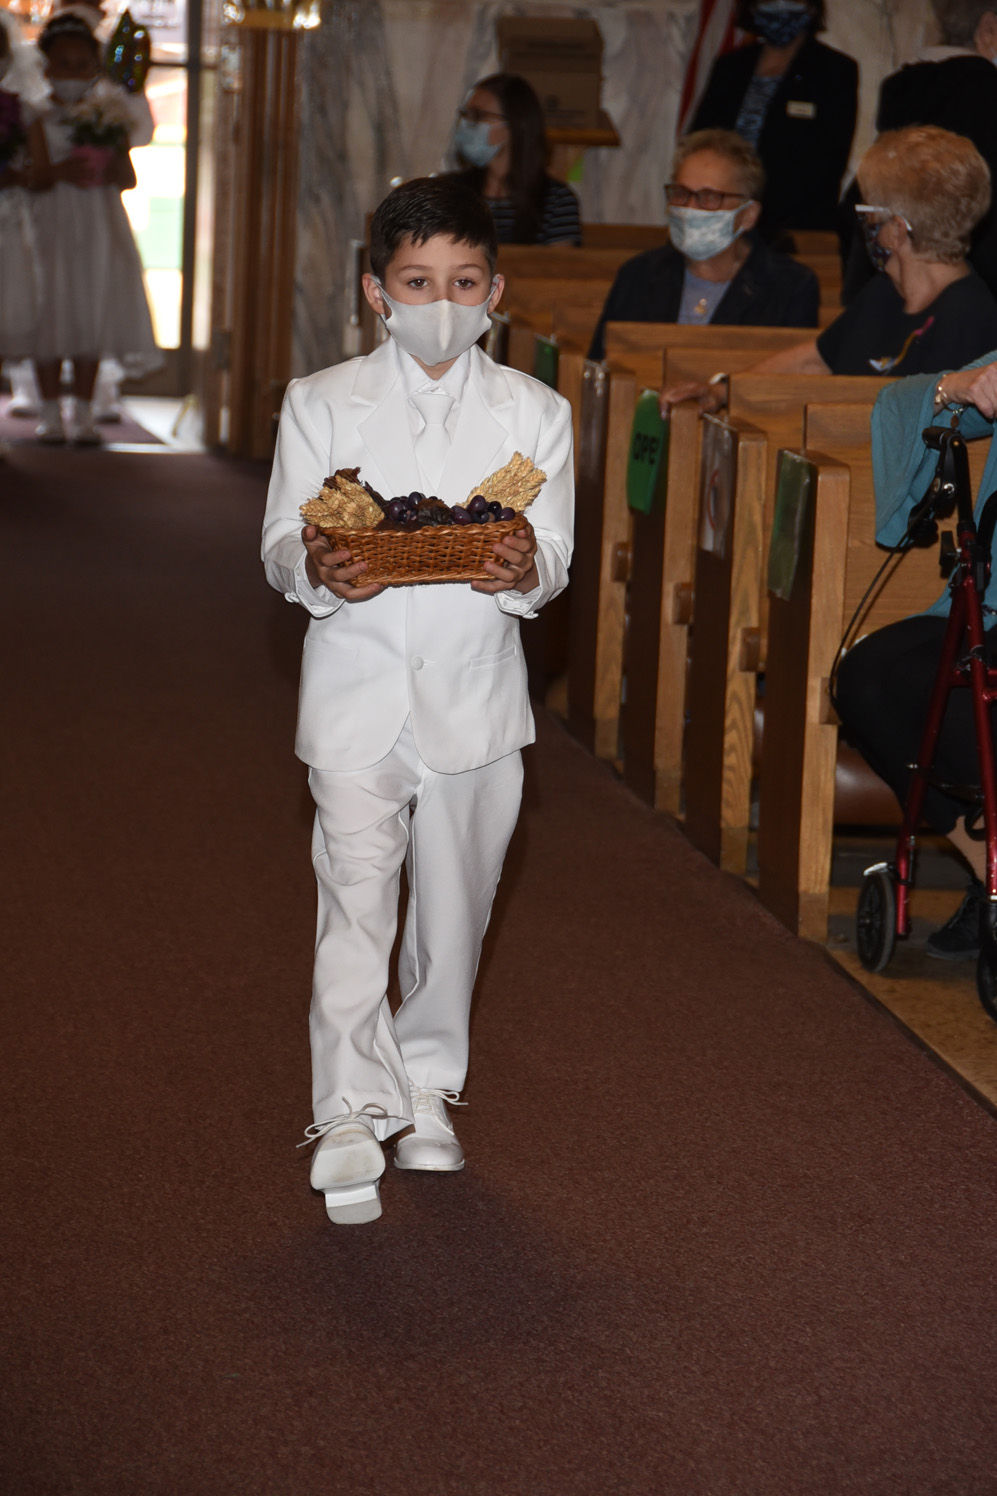 FIRST-COMMUNION-MAY-15-2021-10011087